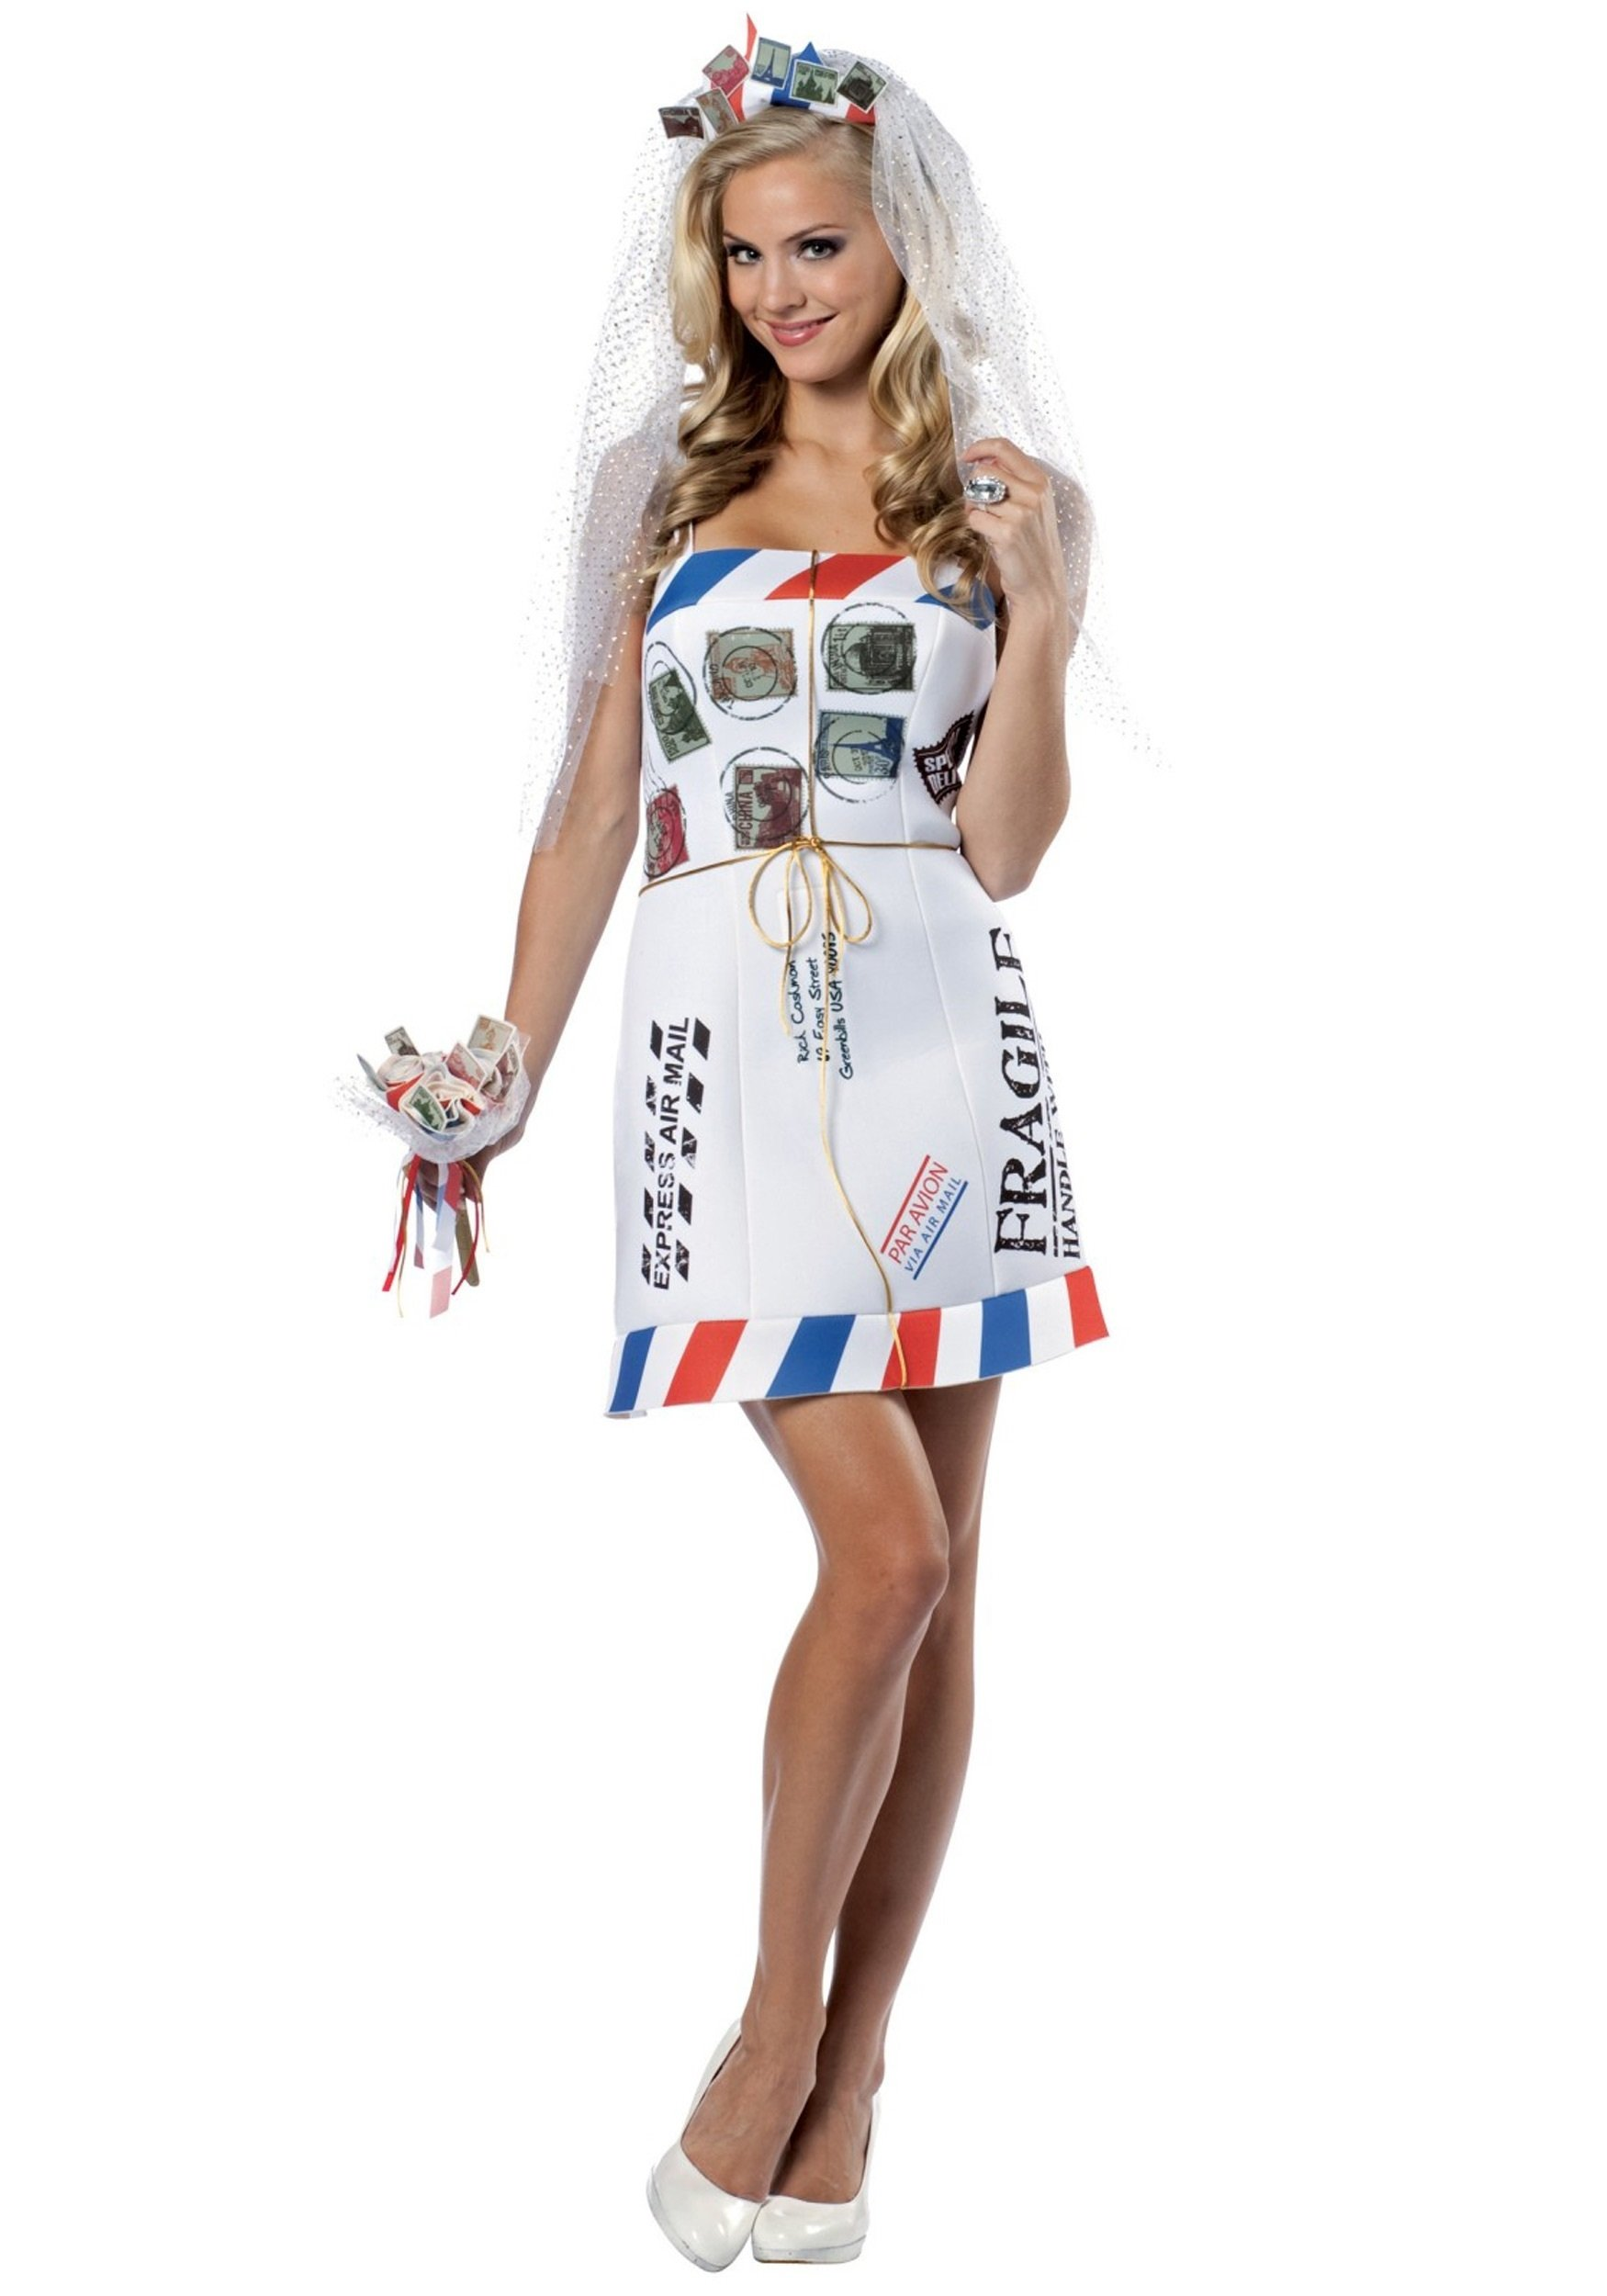 10 Famous Clever Halloween Costume Ideas Women funny mail order bride costume funny halloween costume ideas for women 2 2020